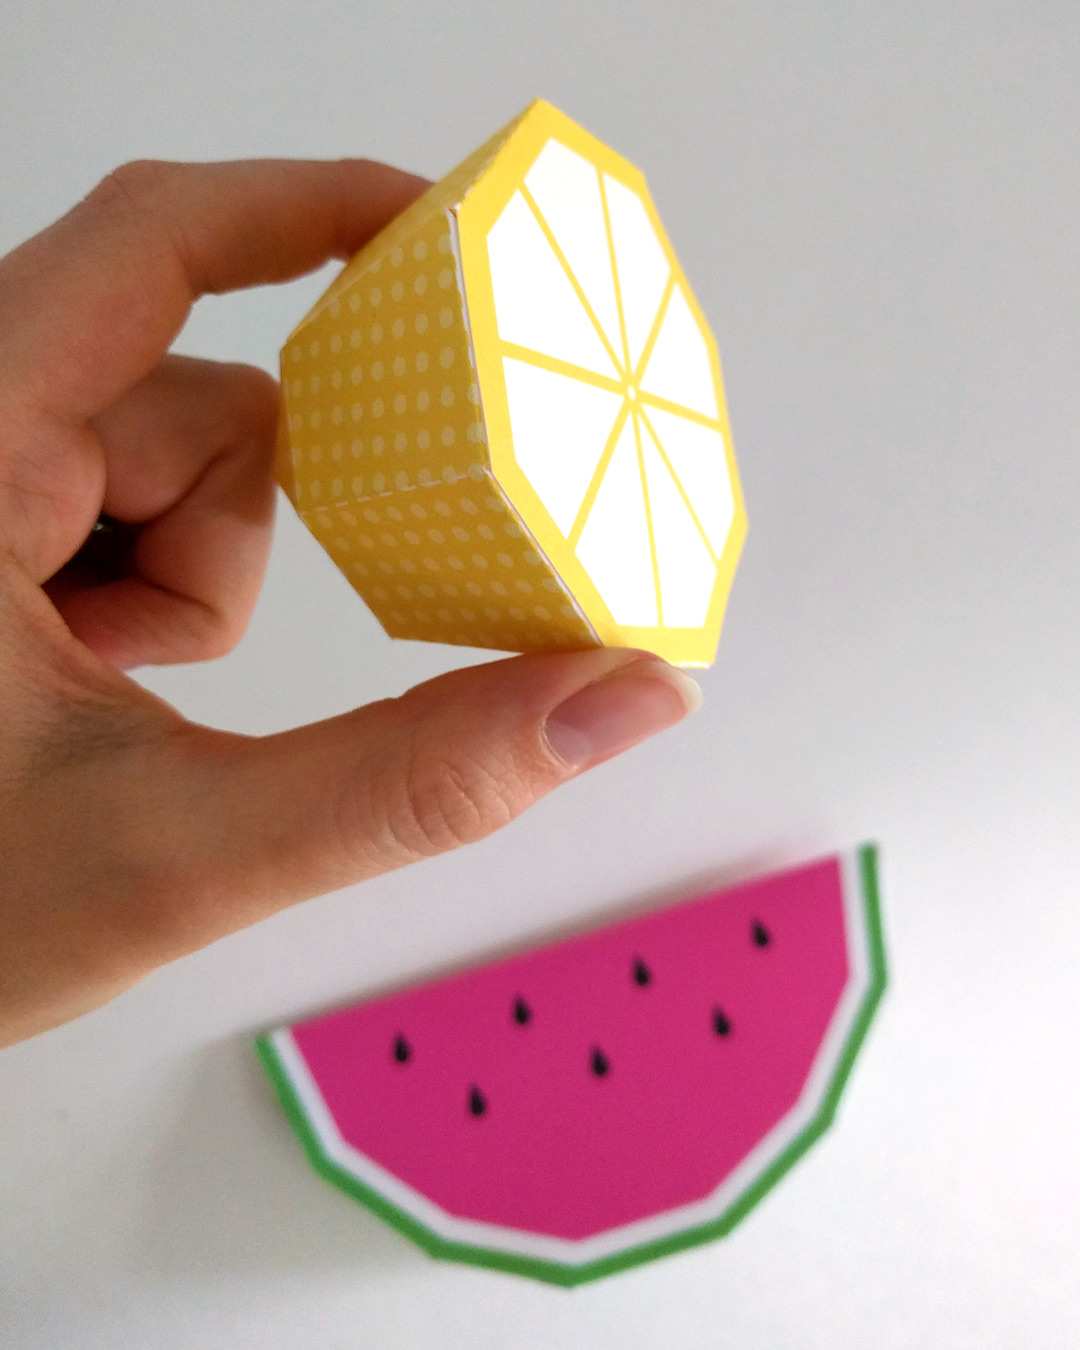 Papercraft lemon and watermelon